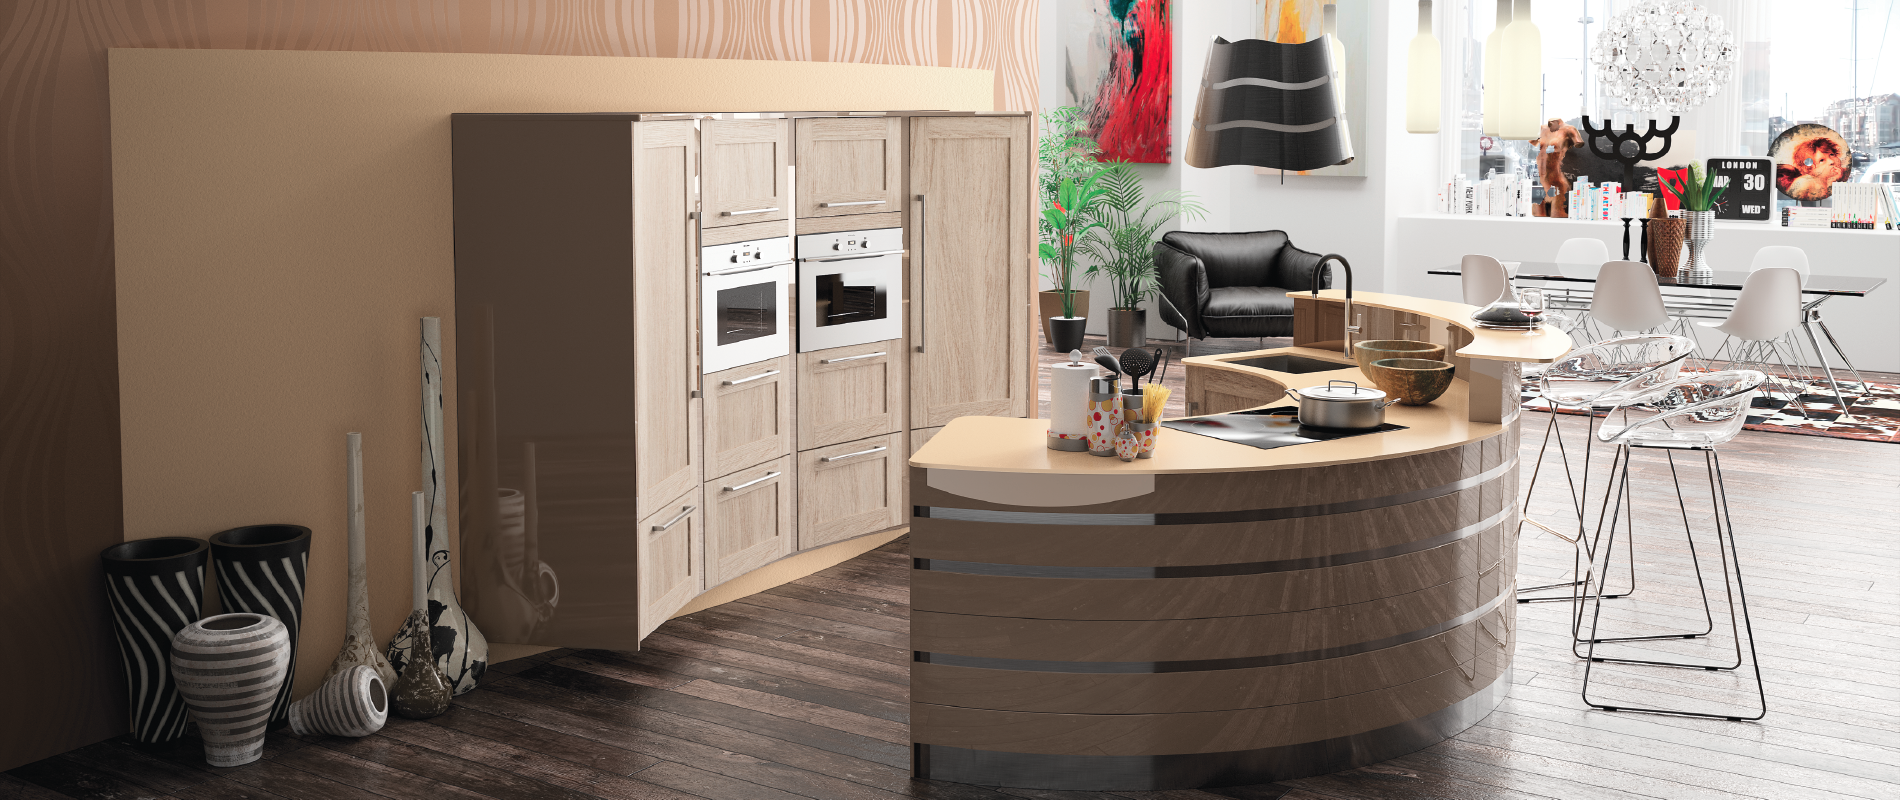 Modele de cuisine americaine avec bar for Cuisine contemporaine design